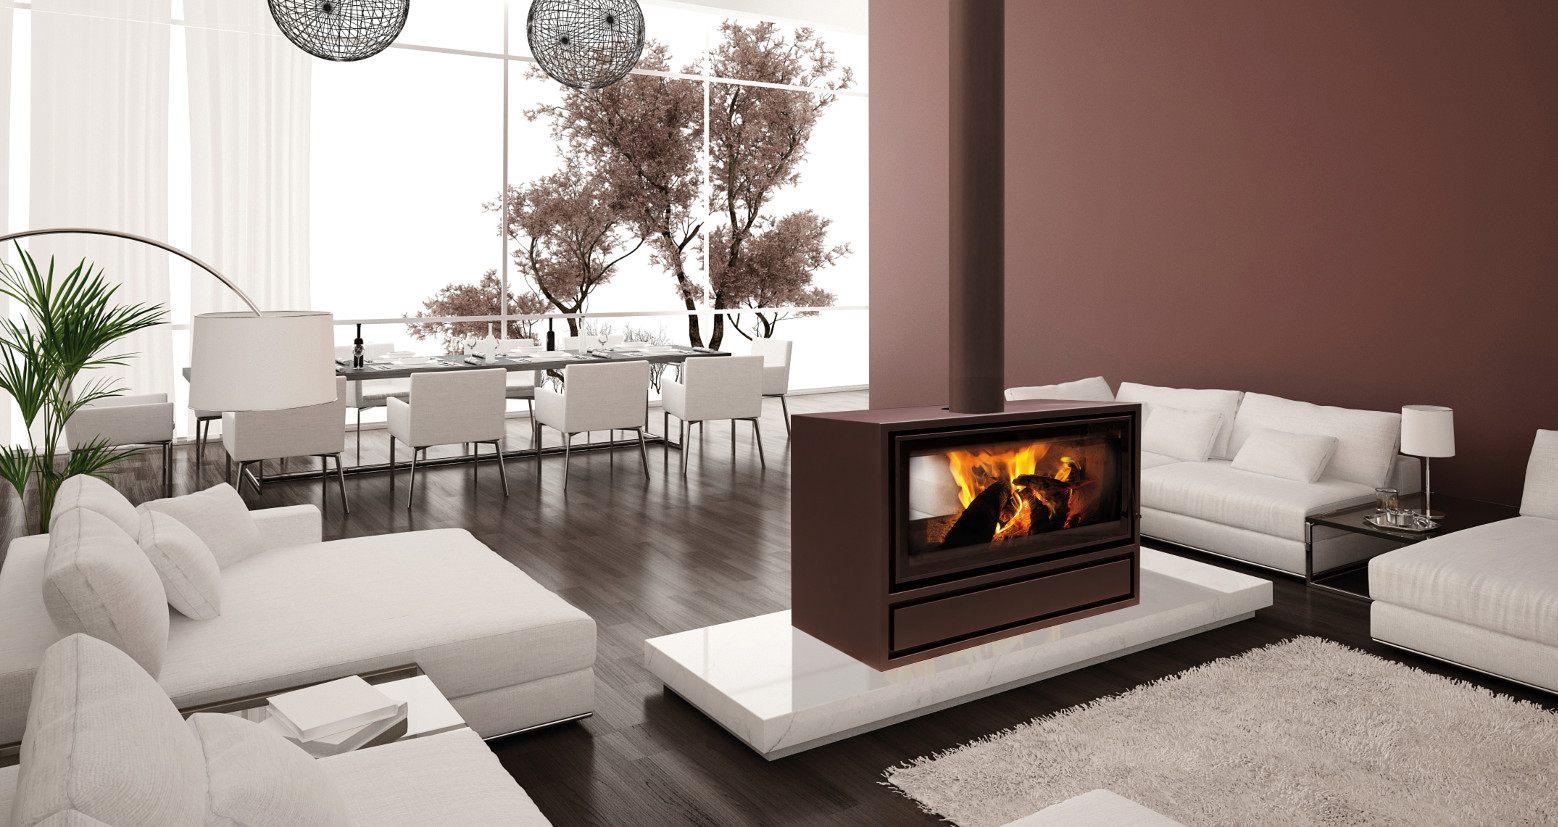 2 Sided Wood Burning Fireplace Fireplace Design Ideas